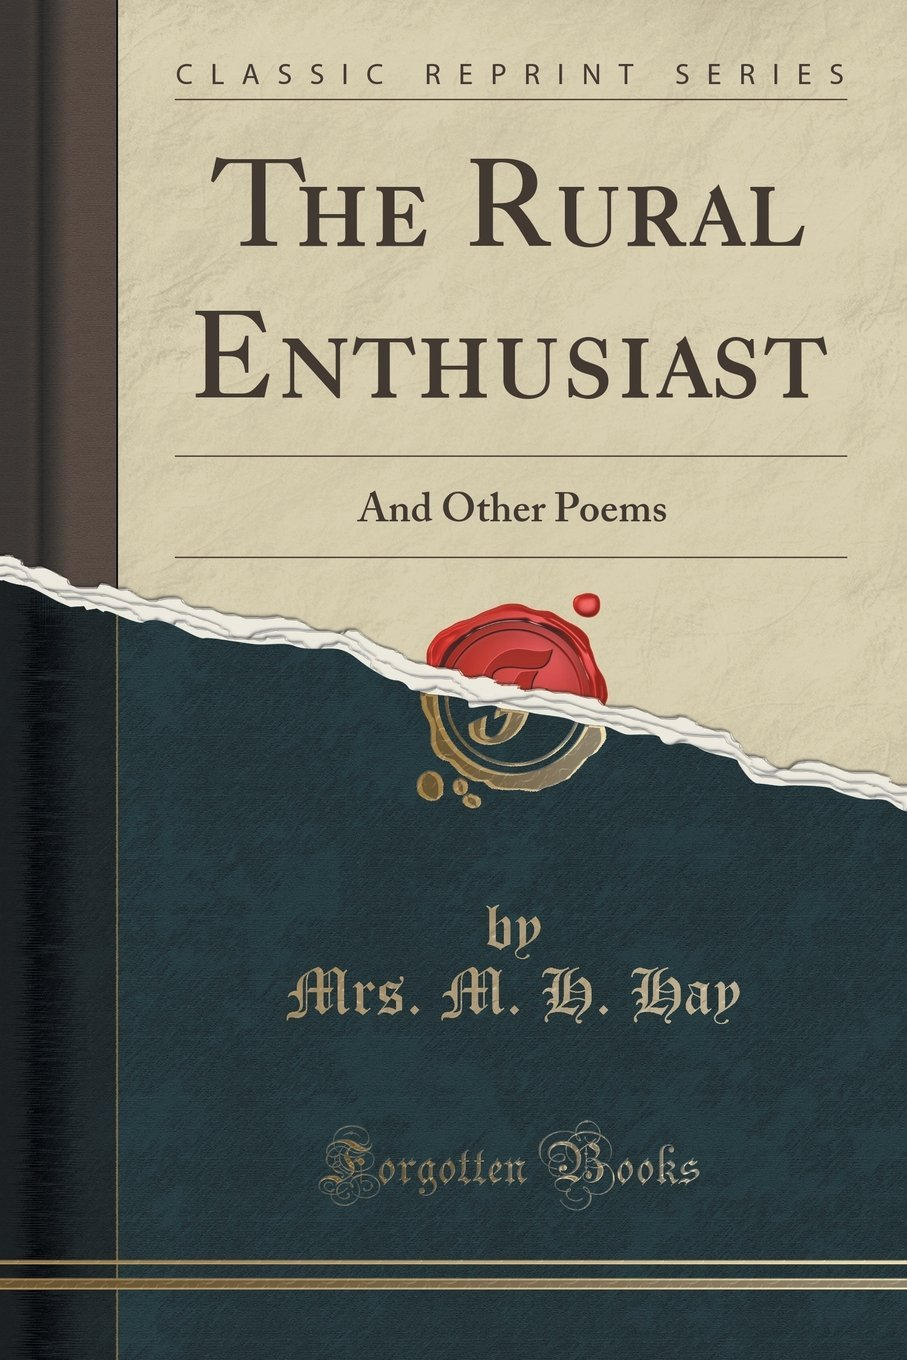 The Rural Enthusiast: And Other Poems M.H. Hay